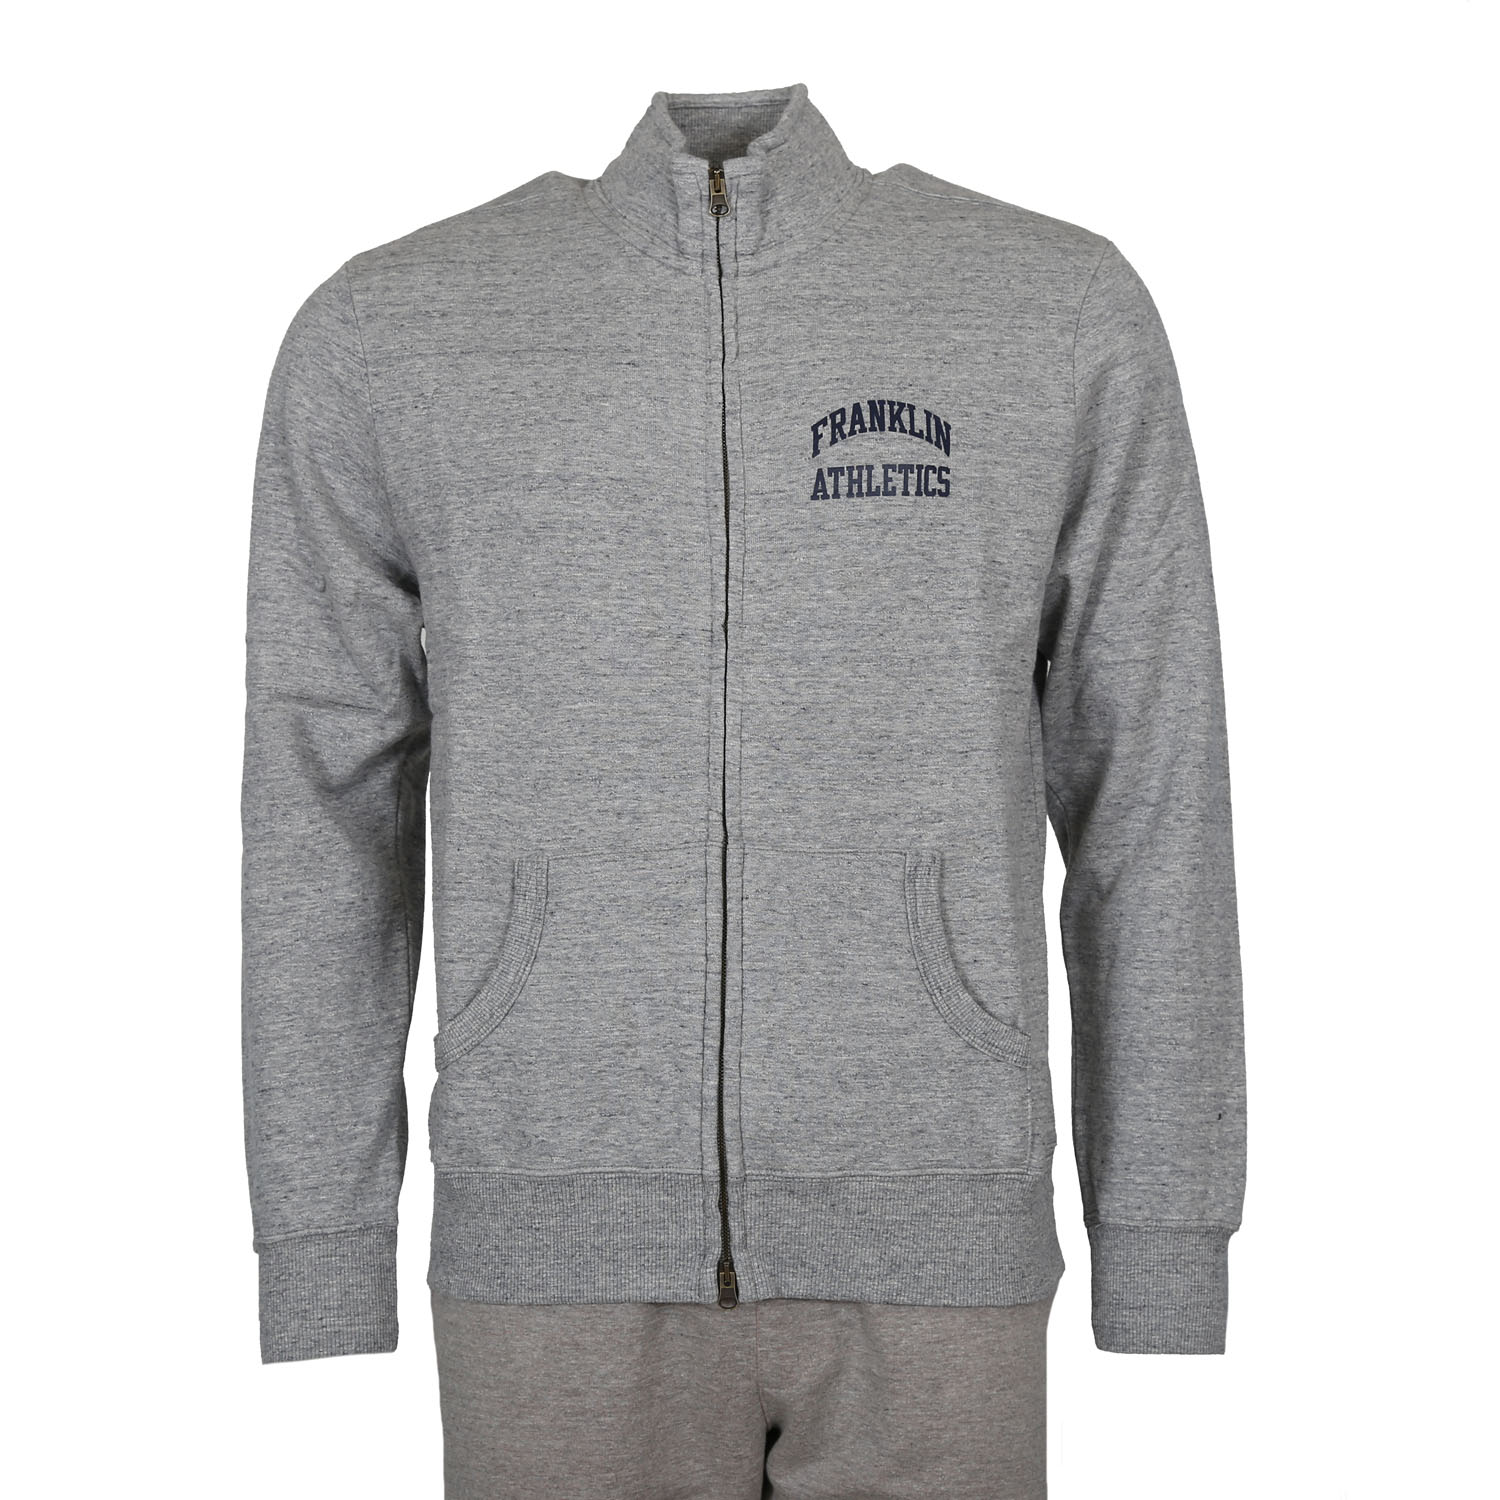 Franklin and Marshall Zip Jacket M ( FLMF130ANAW7-1142 ) ρούχα    άνδρας    sweaters   hoodies   ζακέτες